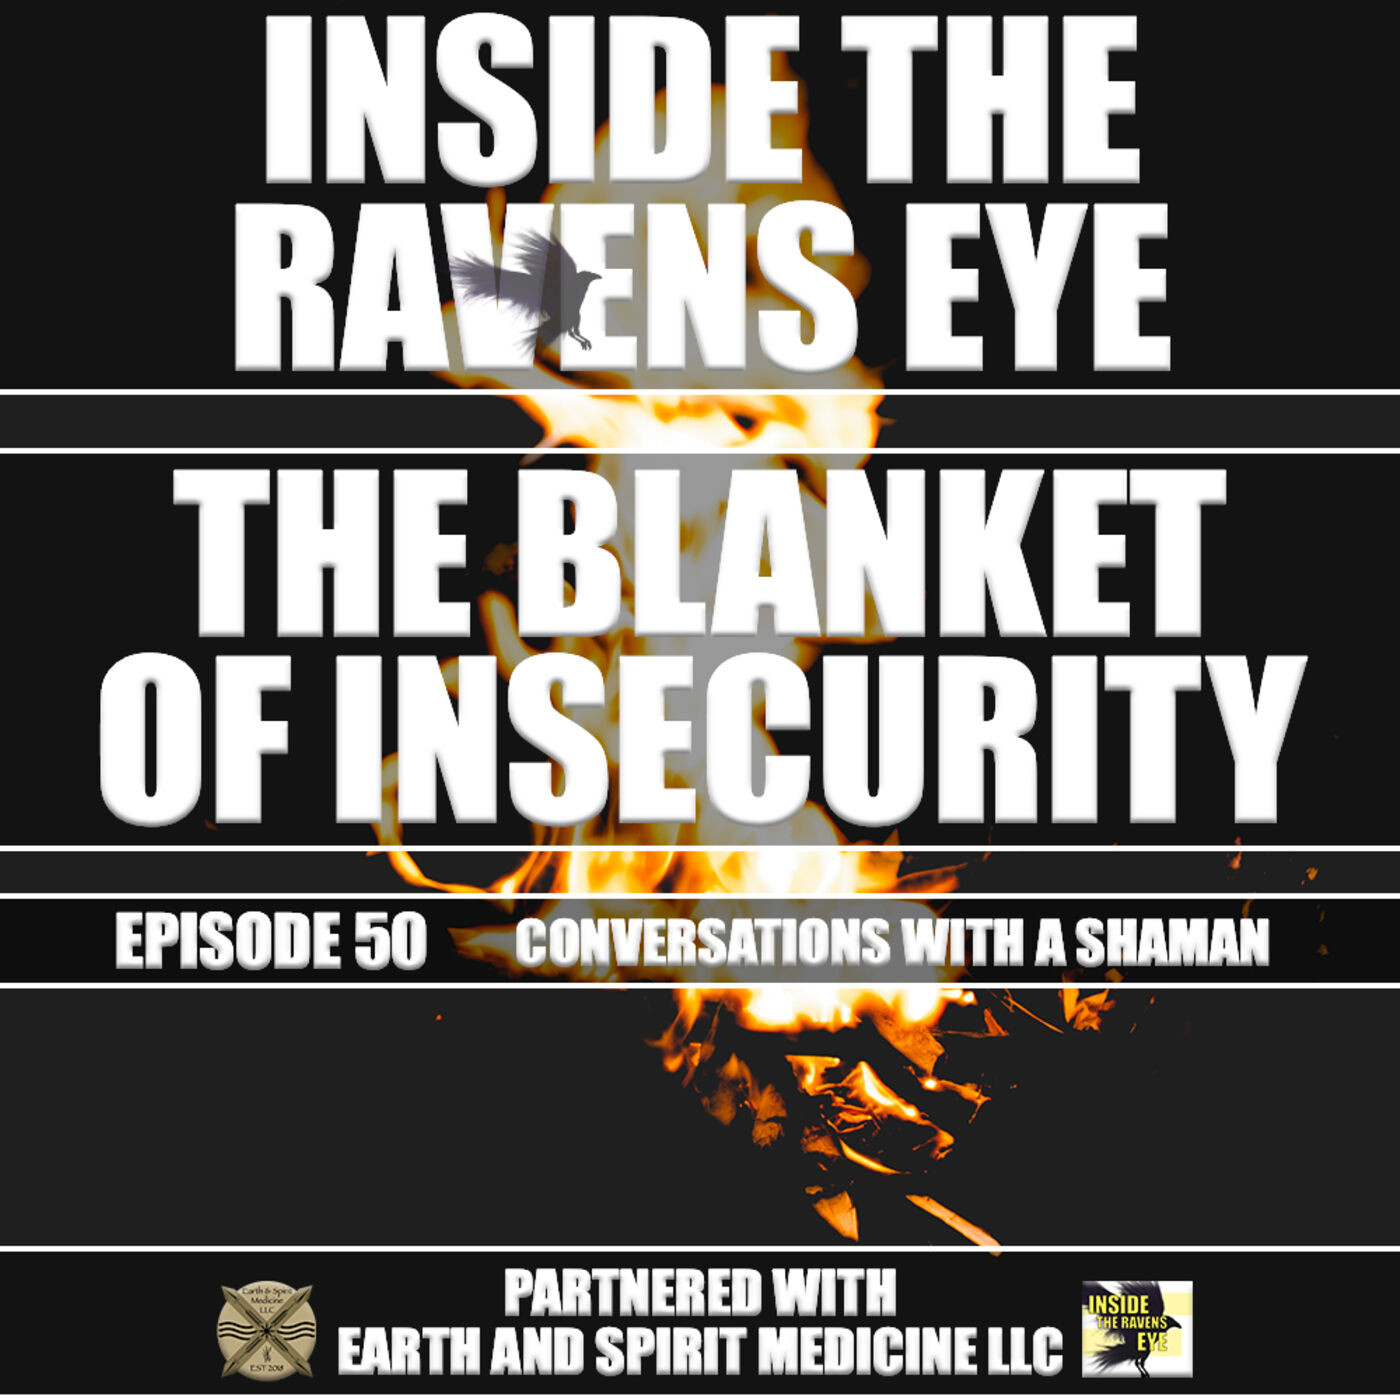 The Blanket Of Insecurity - Episode 50 - Conversations with a Shaman